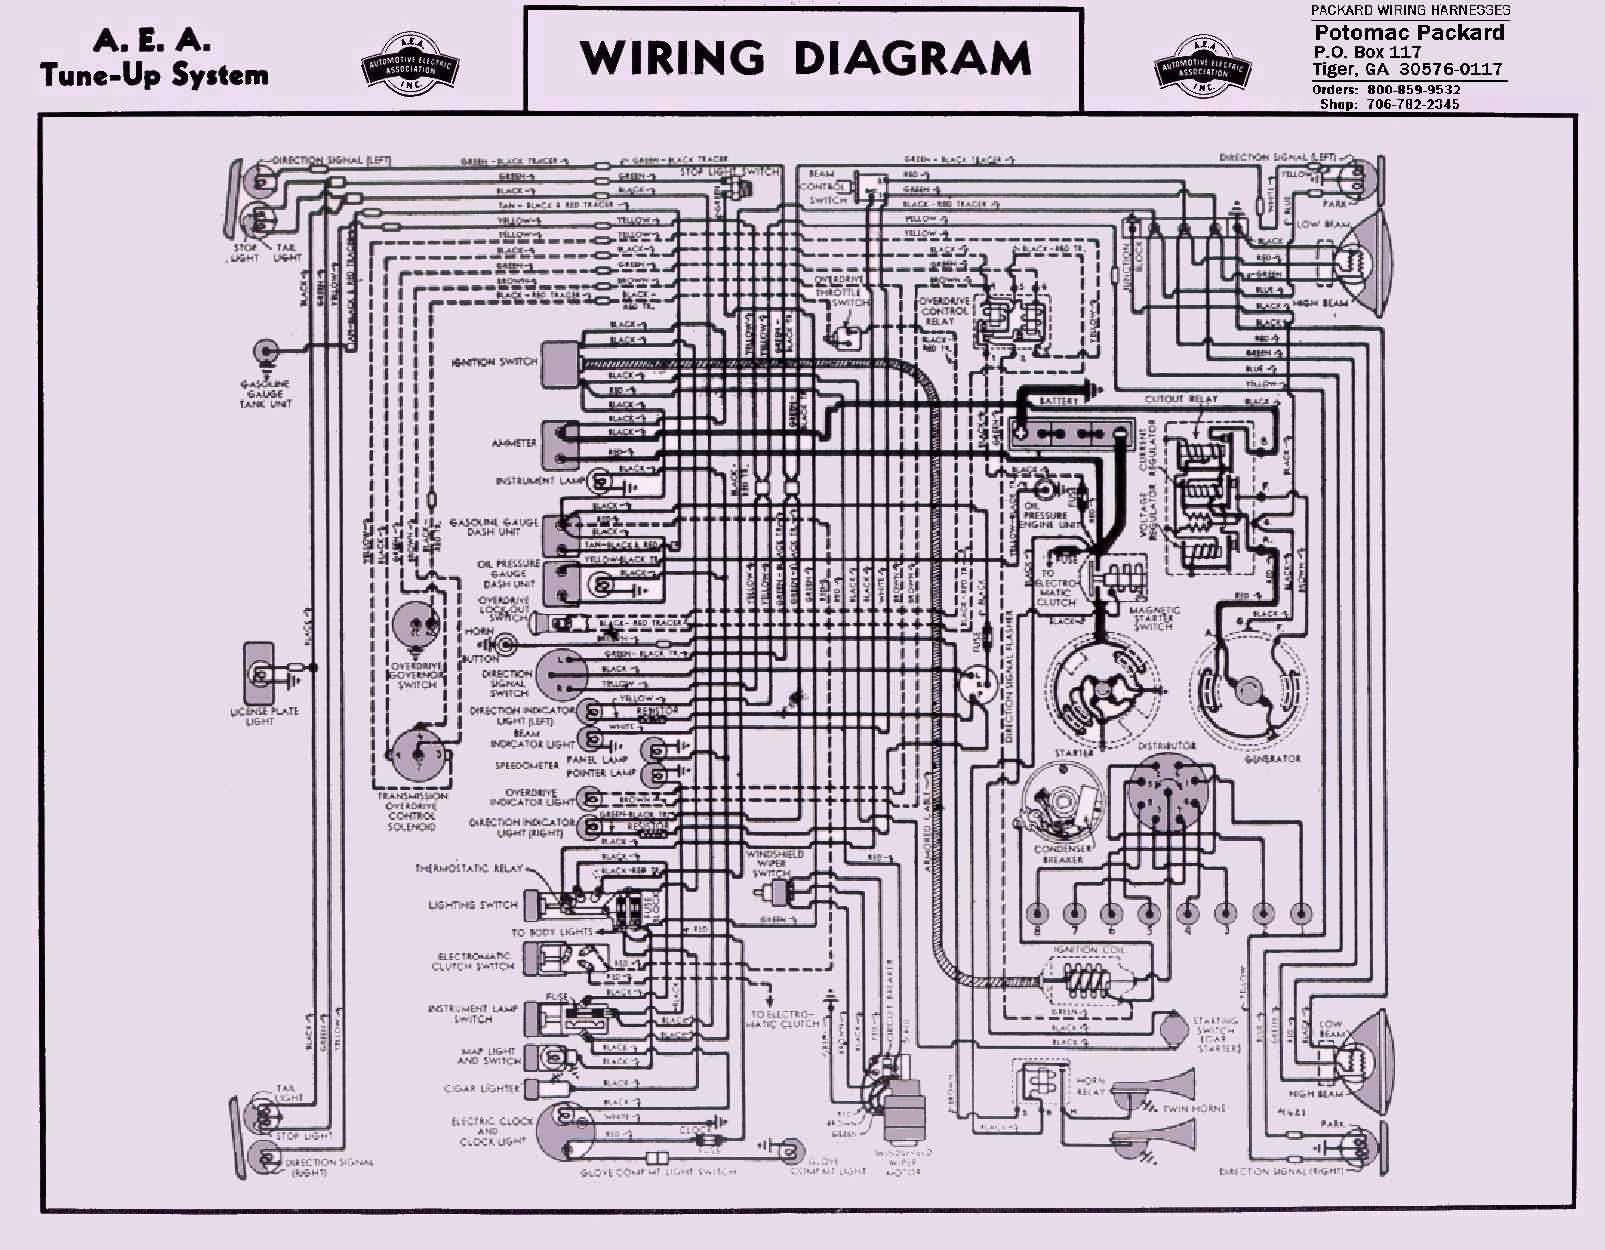 1947 Packard Wiring Diagram Enthusiast Diagrams 1956 Dodge Truck 2012 Chrysler 200 33 1986 Engine